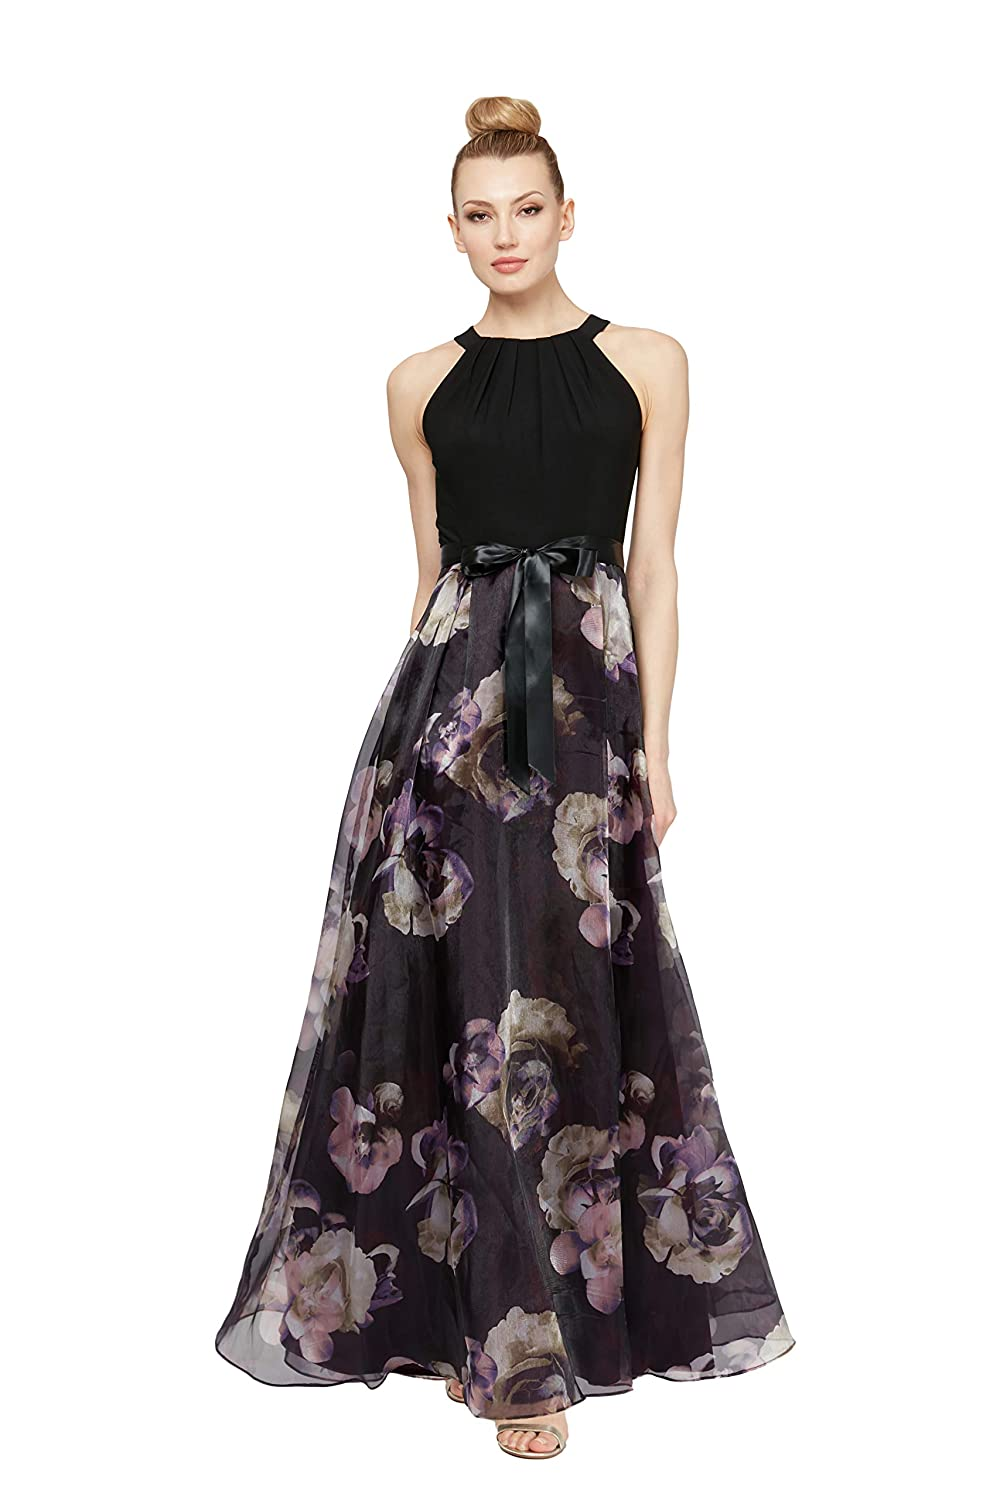 Vintage Evening Dresses and Formal Evening Gowns S.L. Fashions Womens Sleeveless Printed Maxi Dress $149.00 AT vintagedancer.com